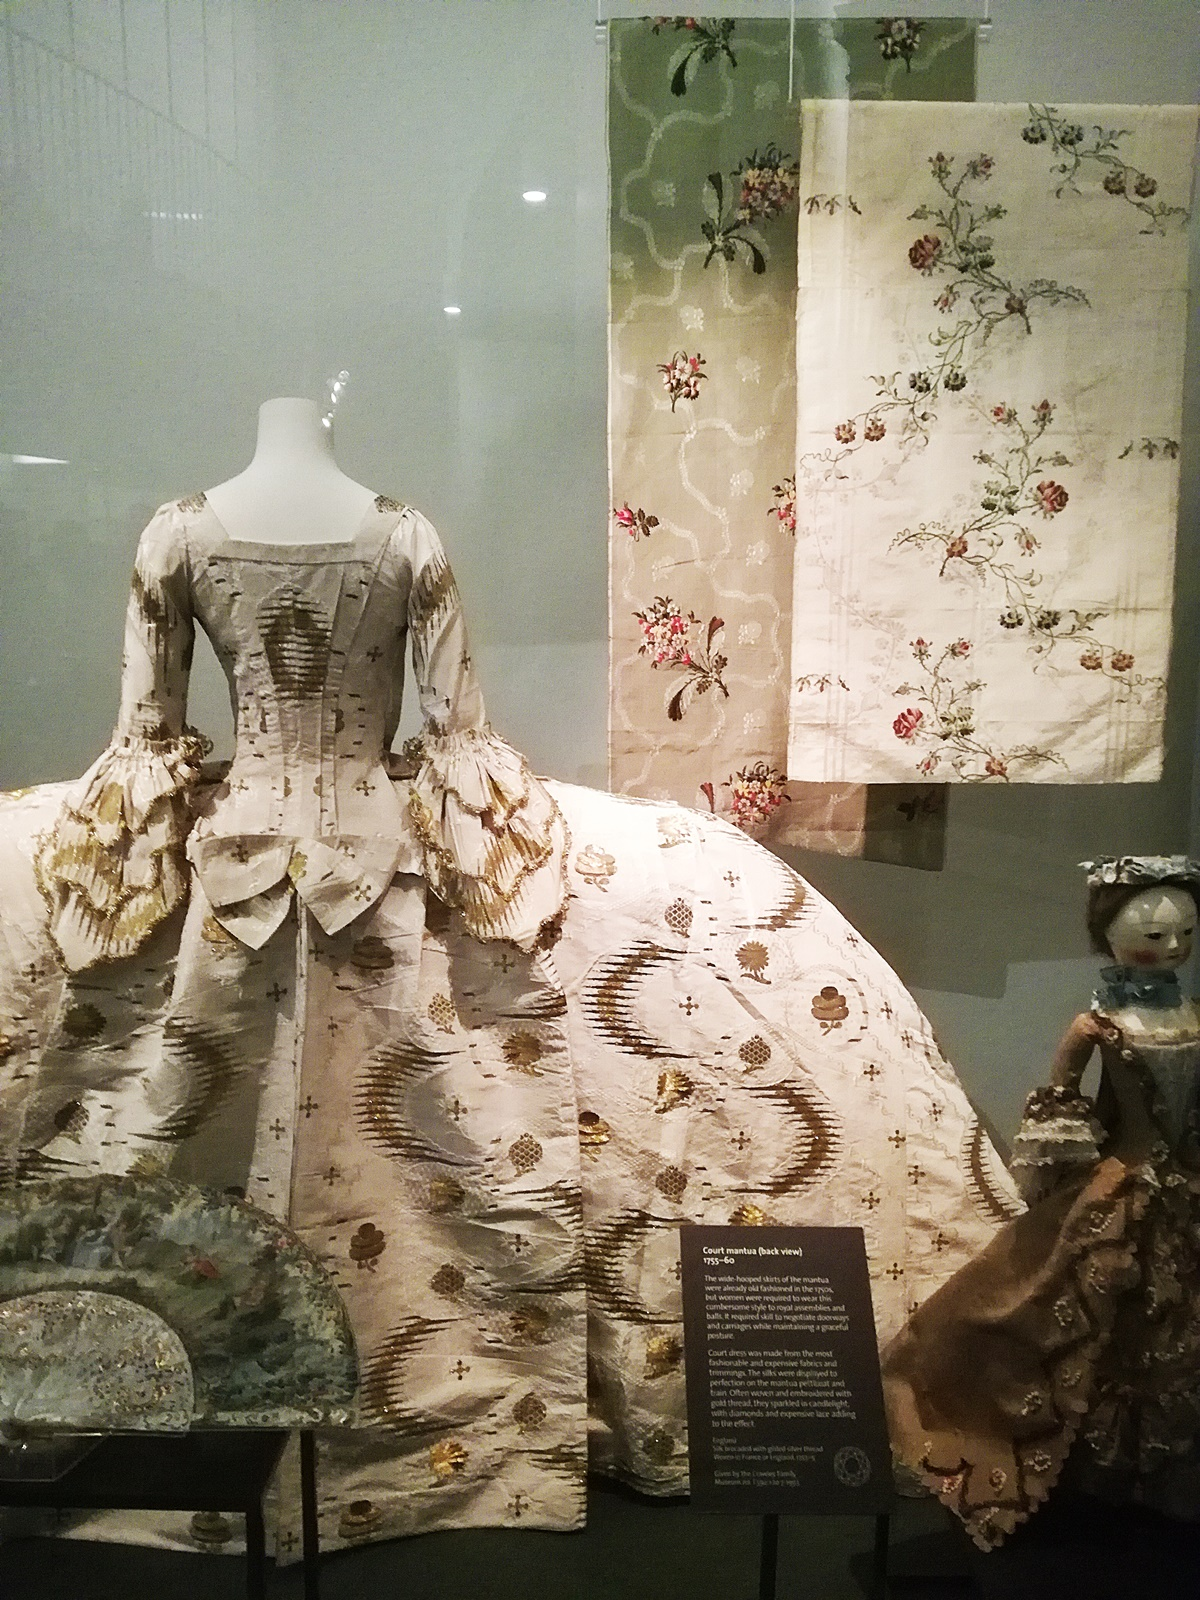 Fashion Design 1750 to the present, Victoria Albert museum, London Fashion Week